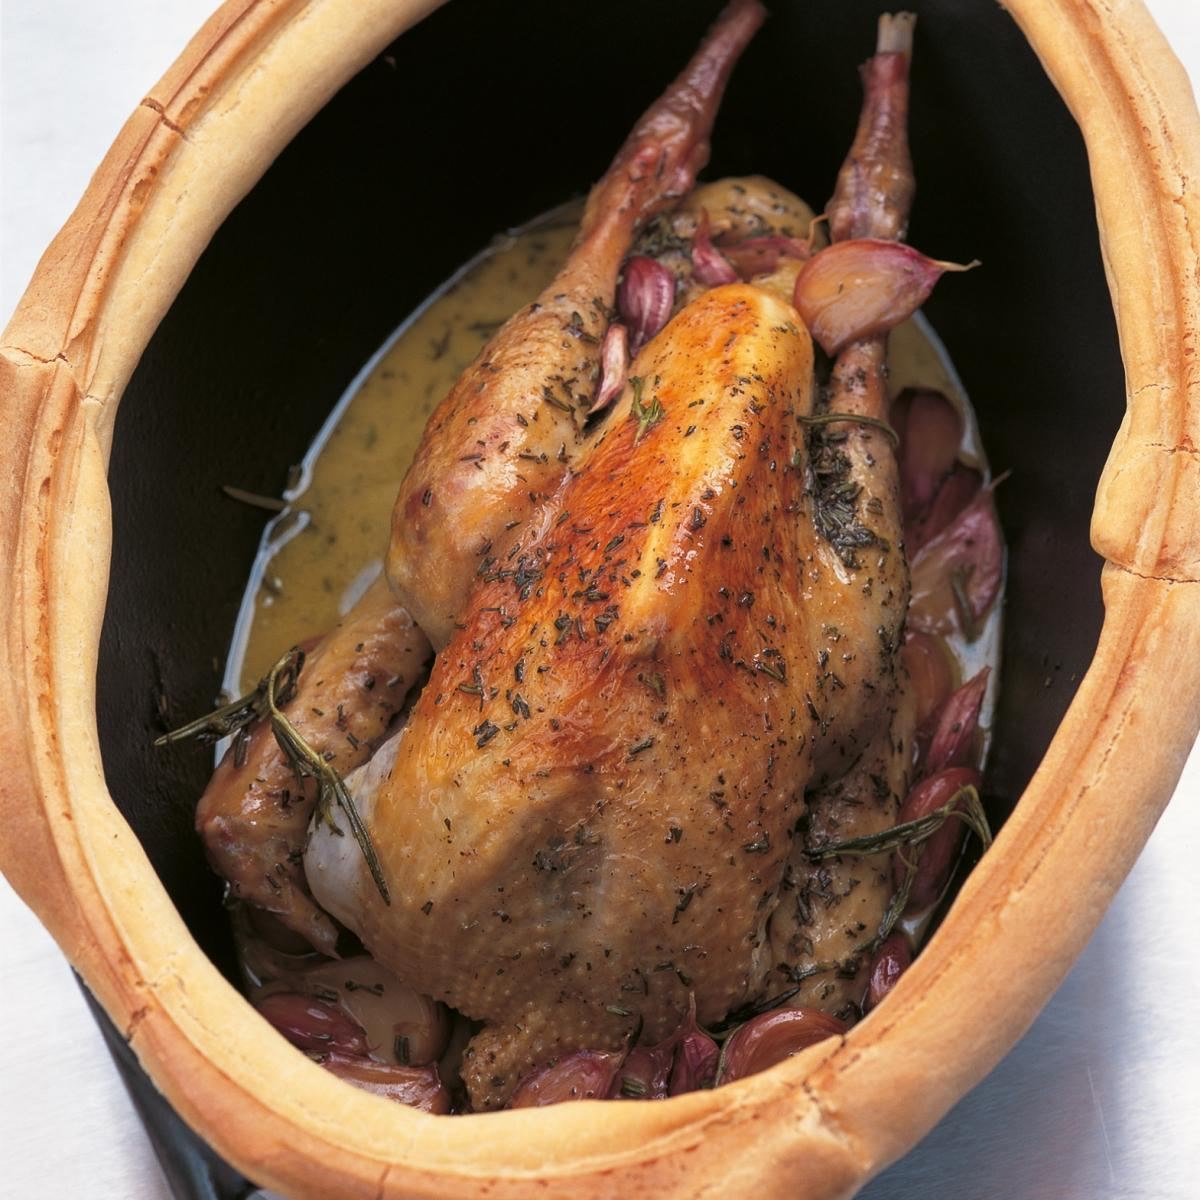 Htc guinea fowl baked with thirty cloves of garlic